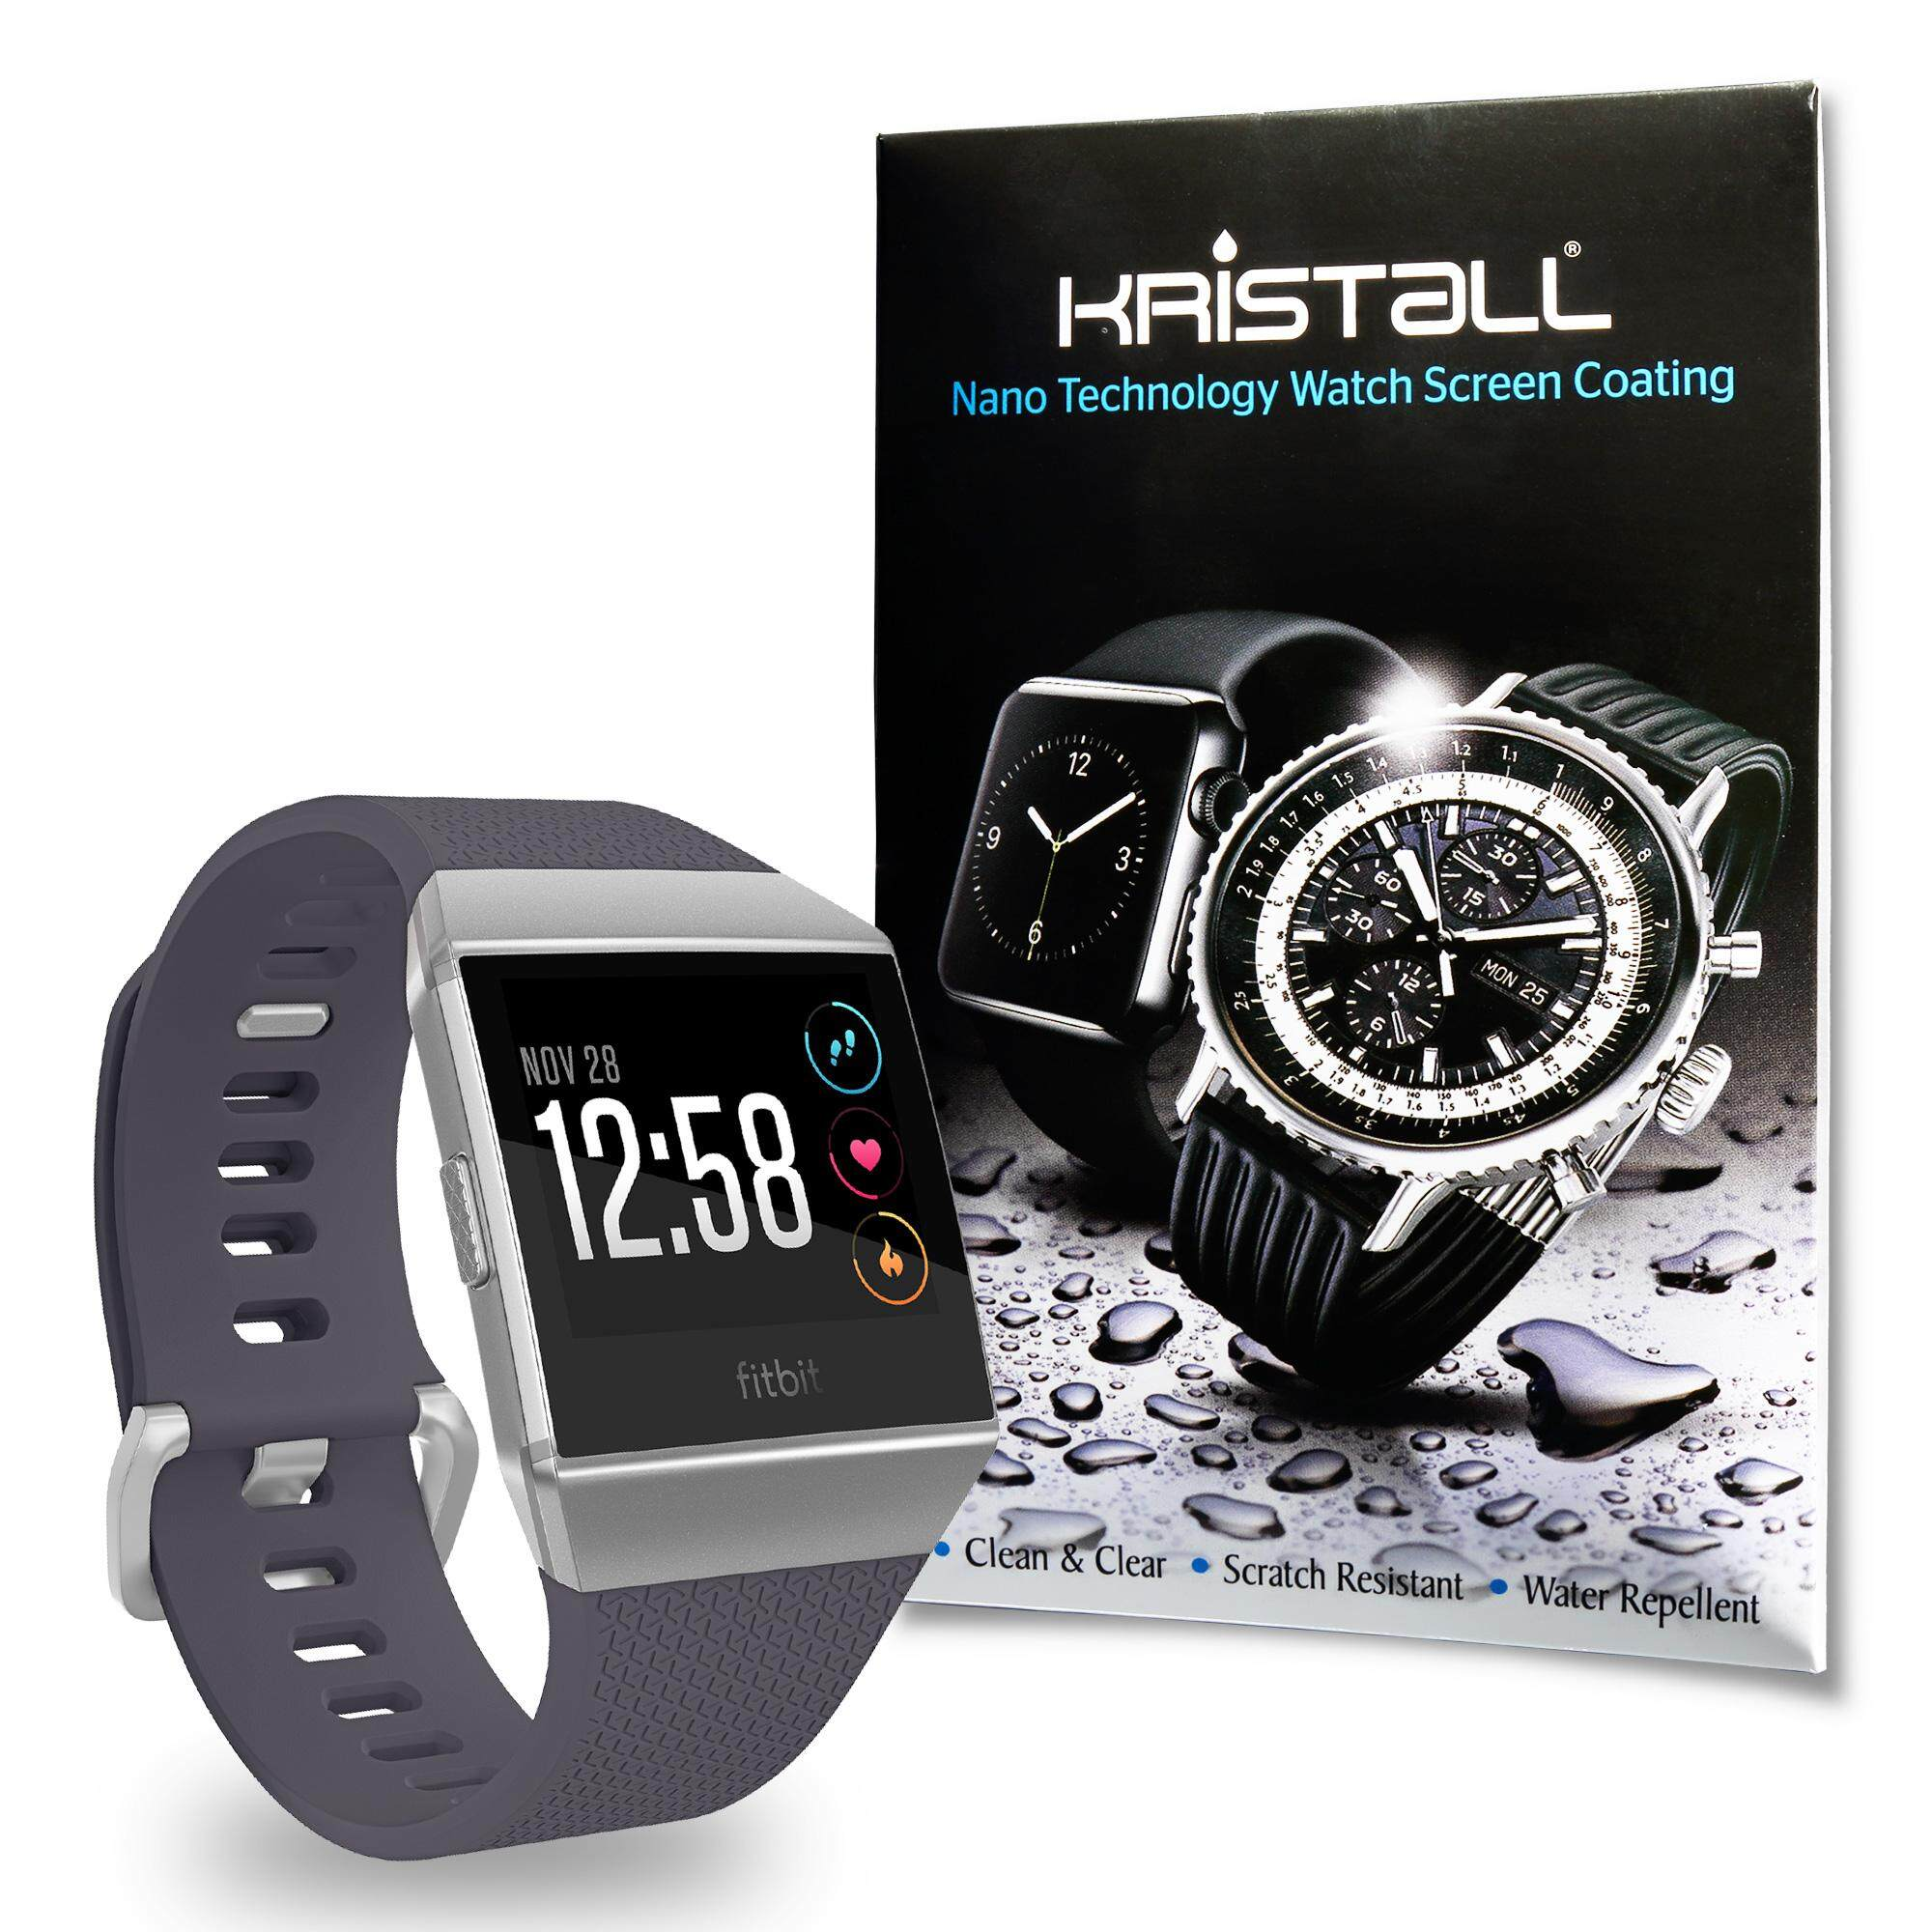 liquid forerunner watches watch garmin en unisex product running gps